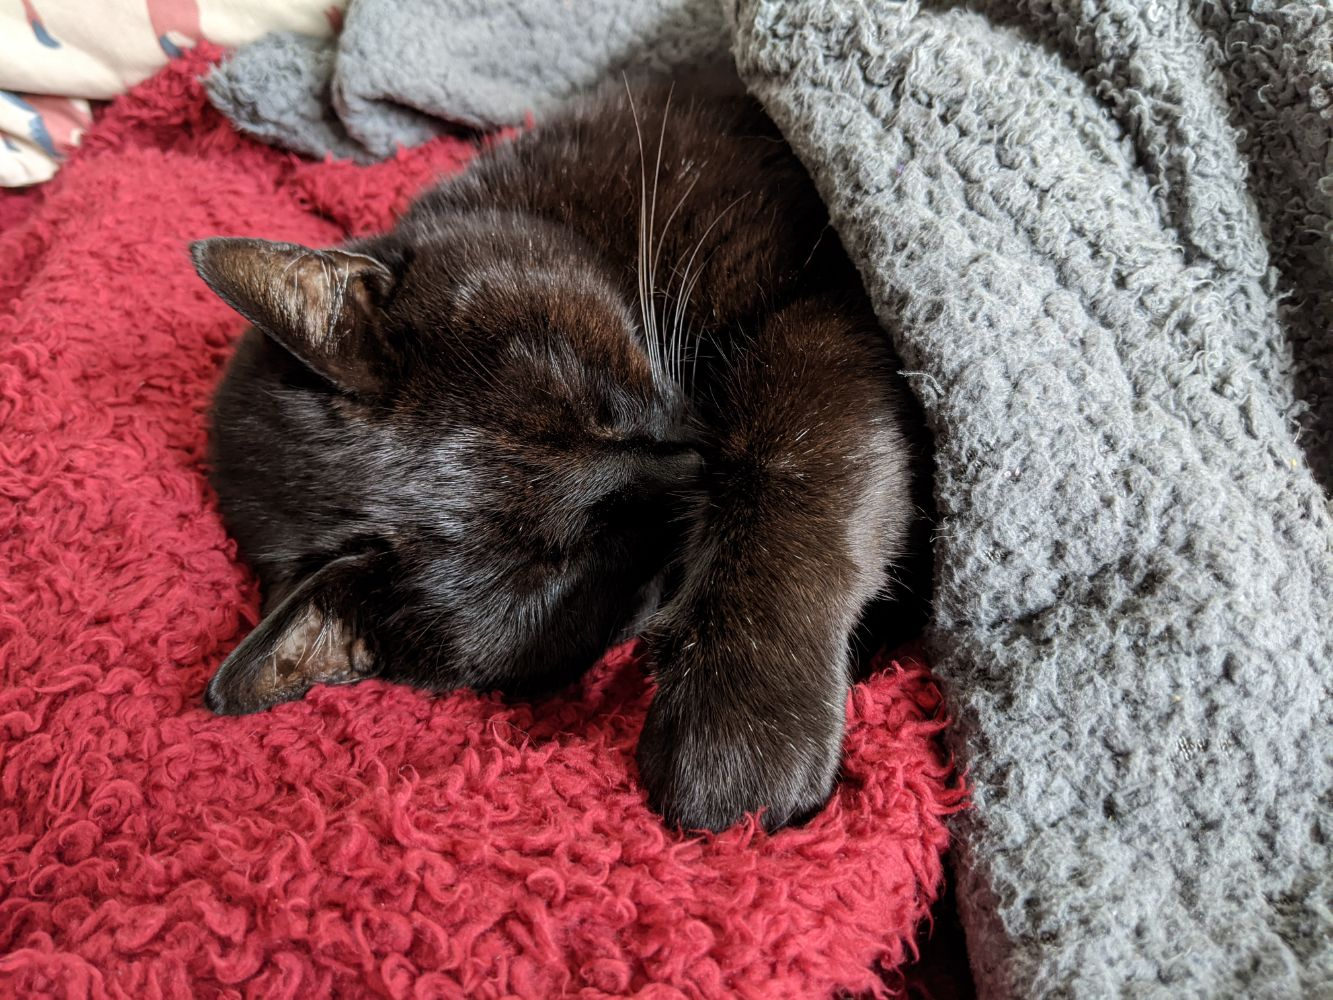 Black cat flopped on his side, asleep, with one paw stretched over him